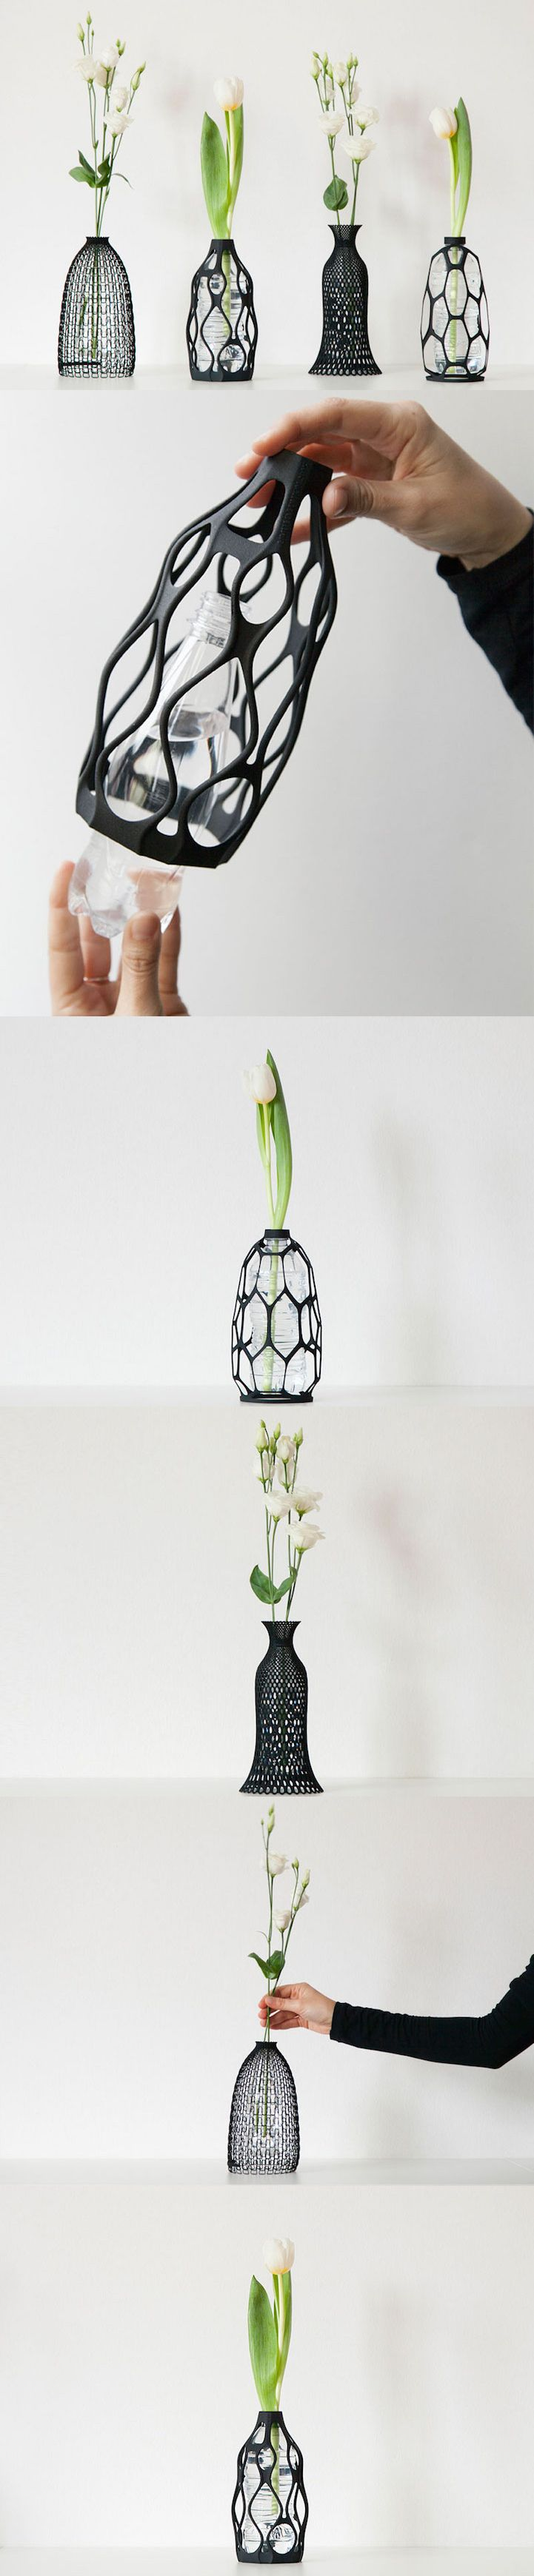 bottle vase covers for the slick minimal contemporary white interior home DesignLibero has reimagined recycling as an art form.